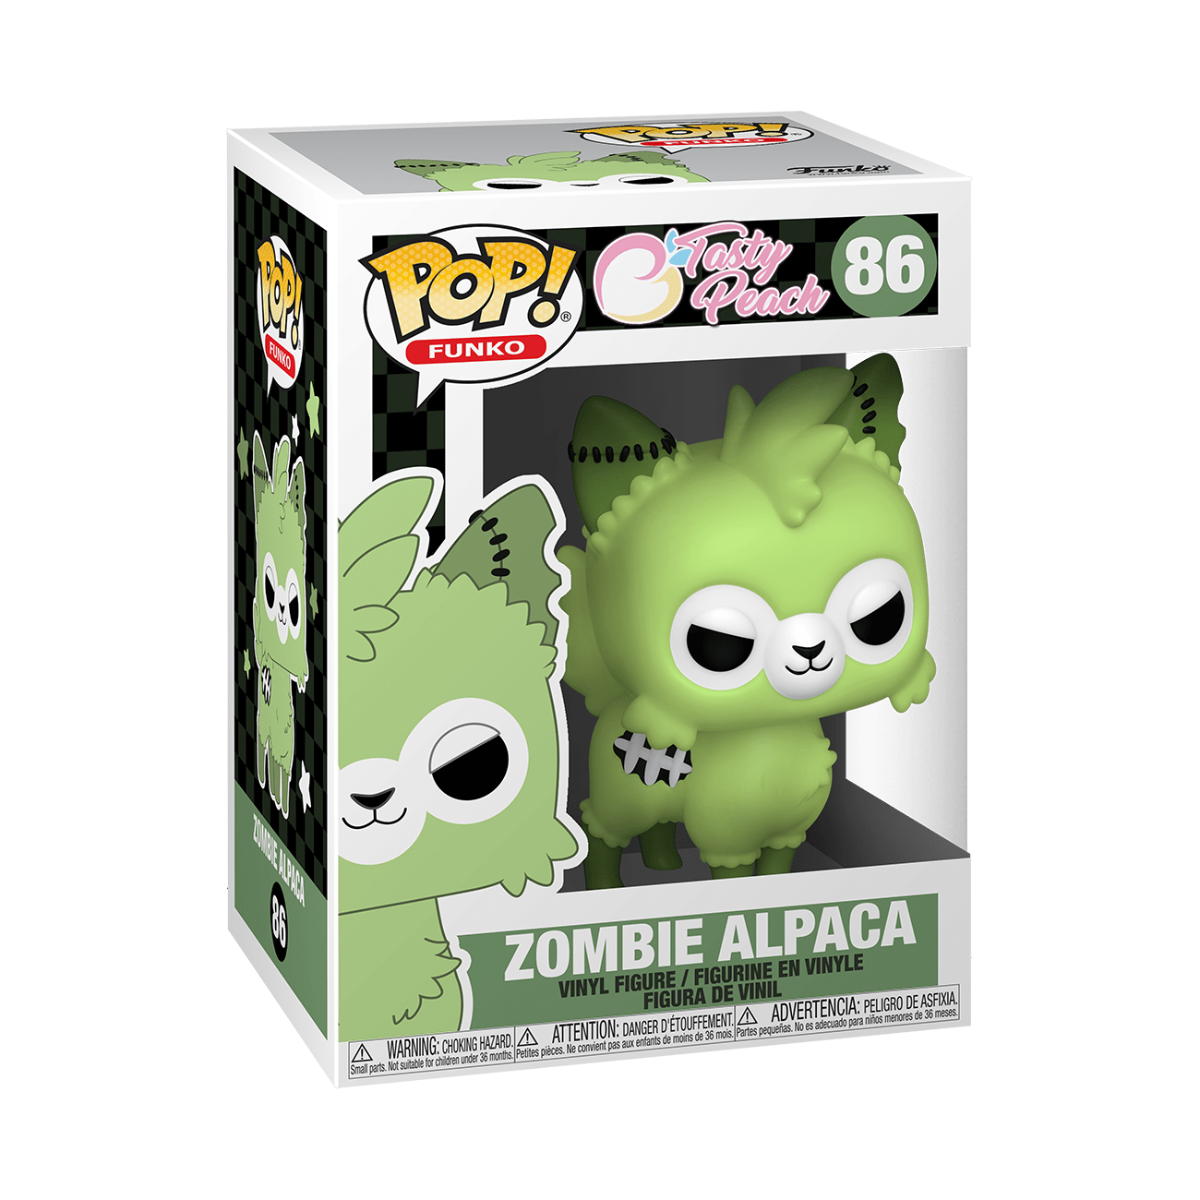 Funko Pop Tasty Peach Zombie Alpaca stock photo